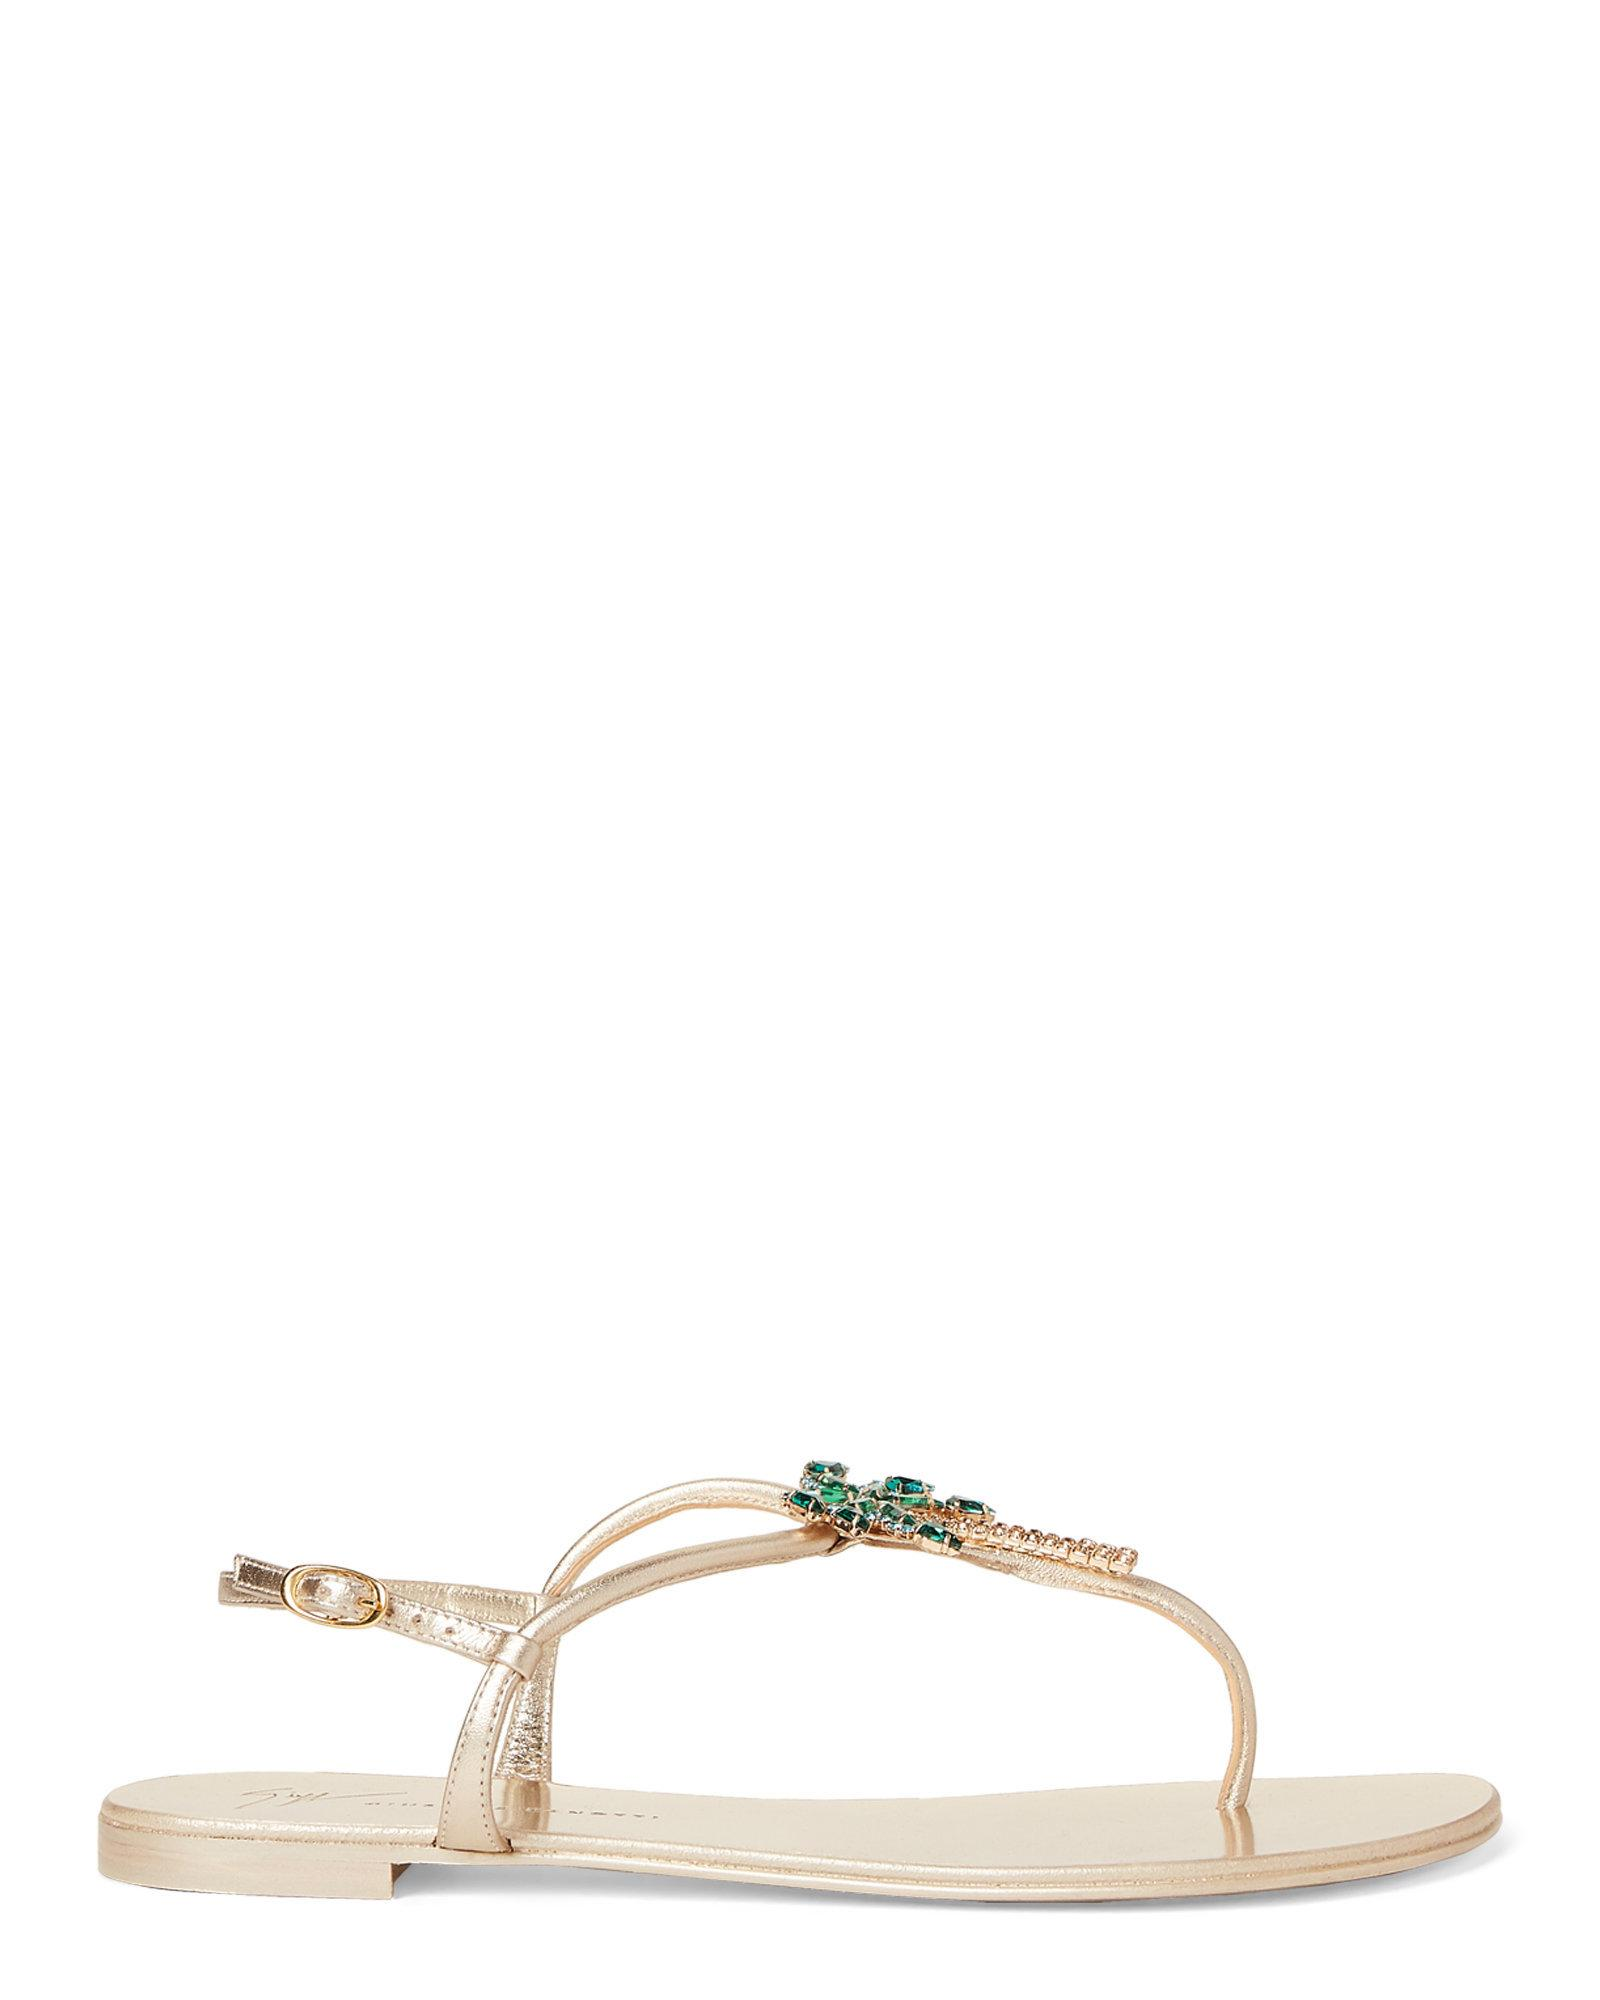 7263c393534c0 Lyst - Giuseppe Zanotti Gold Embellished Palm Tree Flat Sandals in Metallic